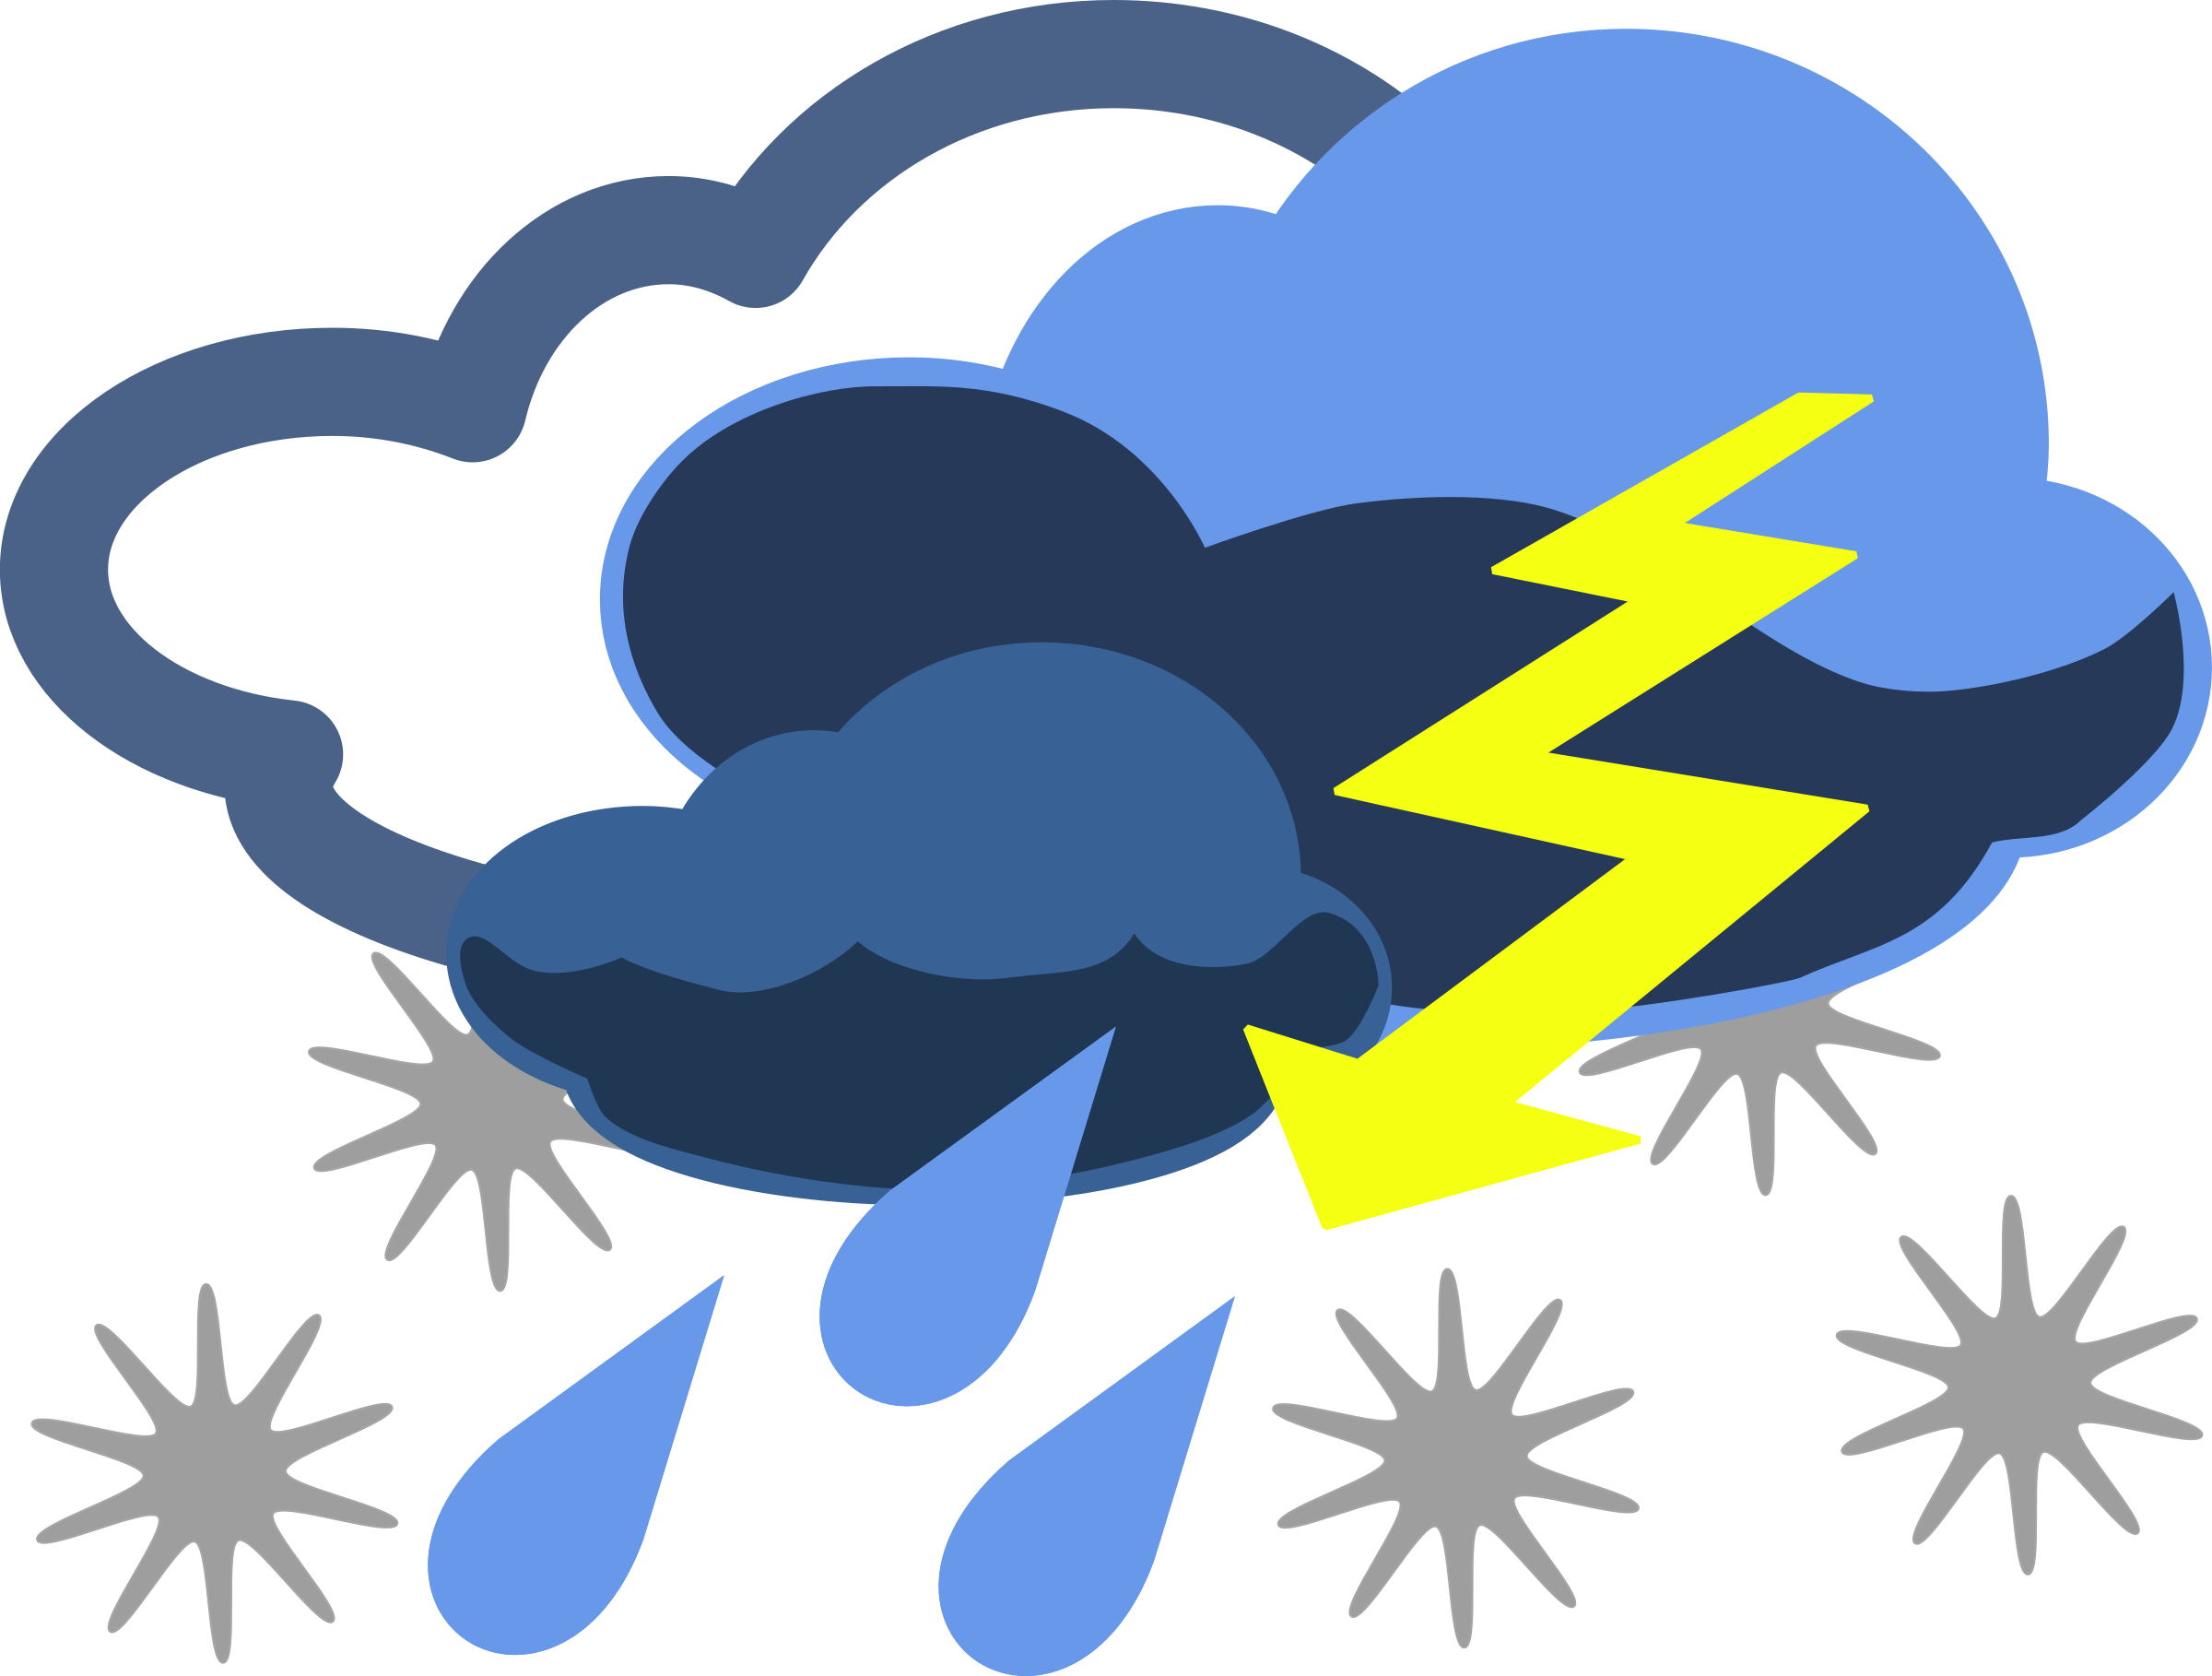 Inclement big image png. Windy clipart bad weather